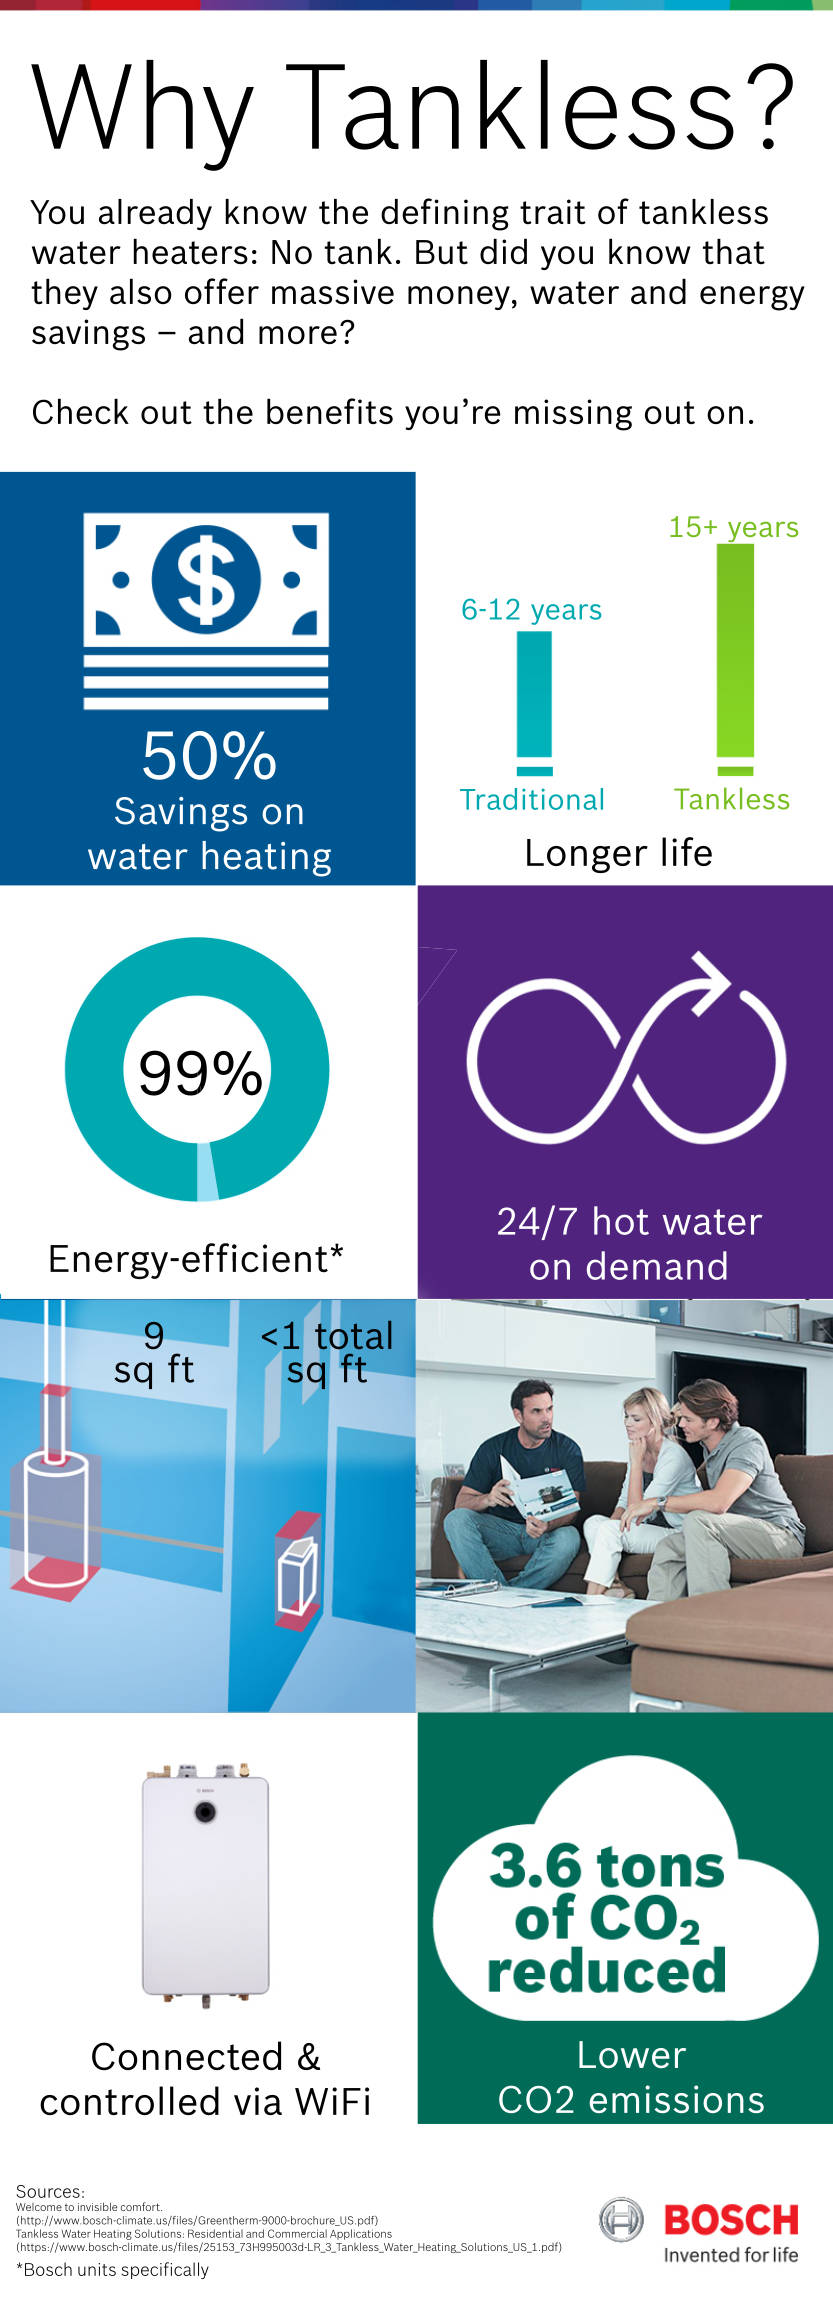 Bosch tankless water heater Infographic: Why Tankless?